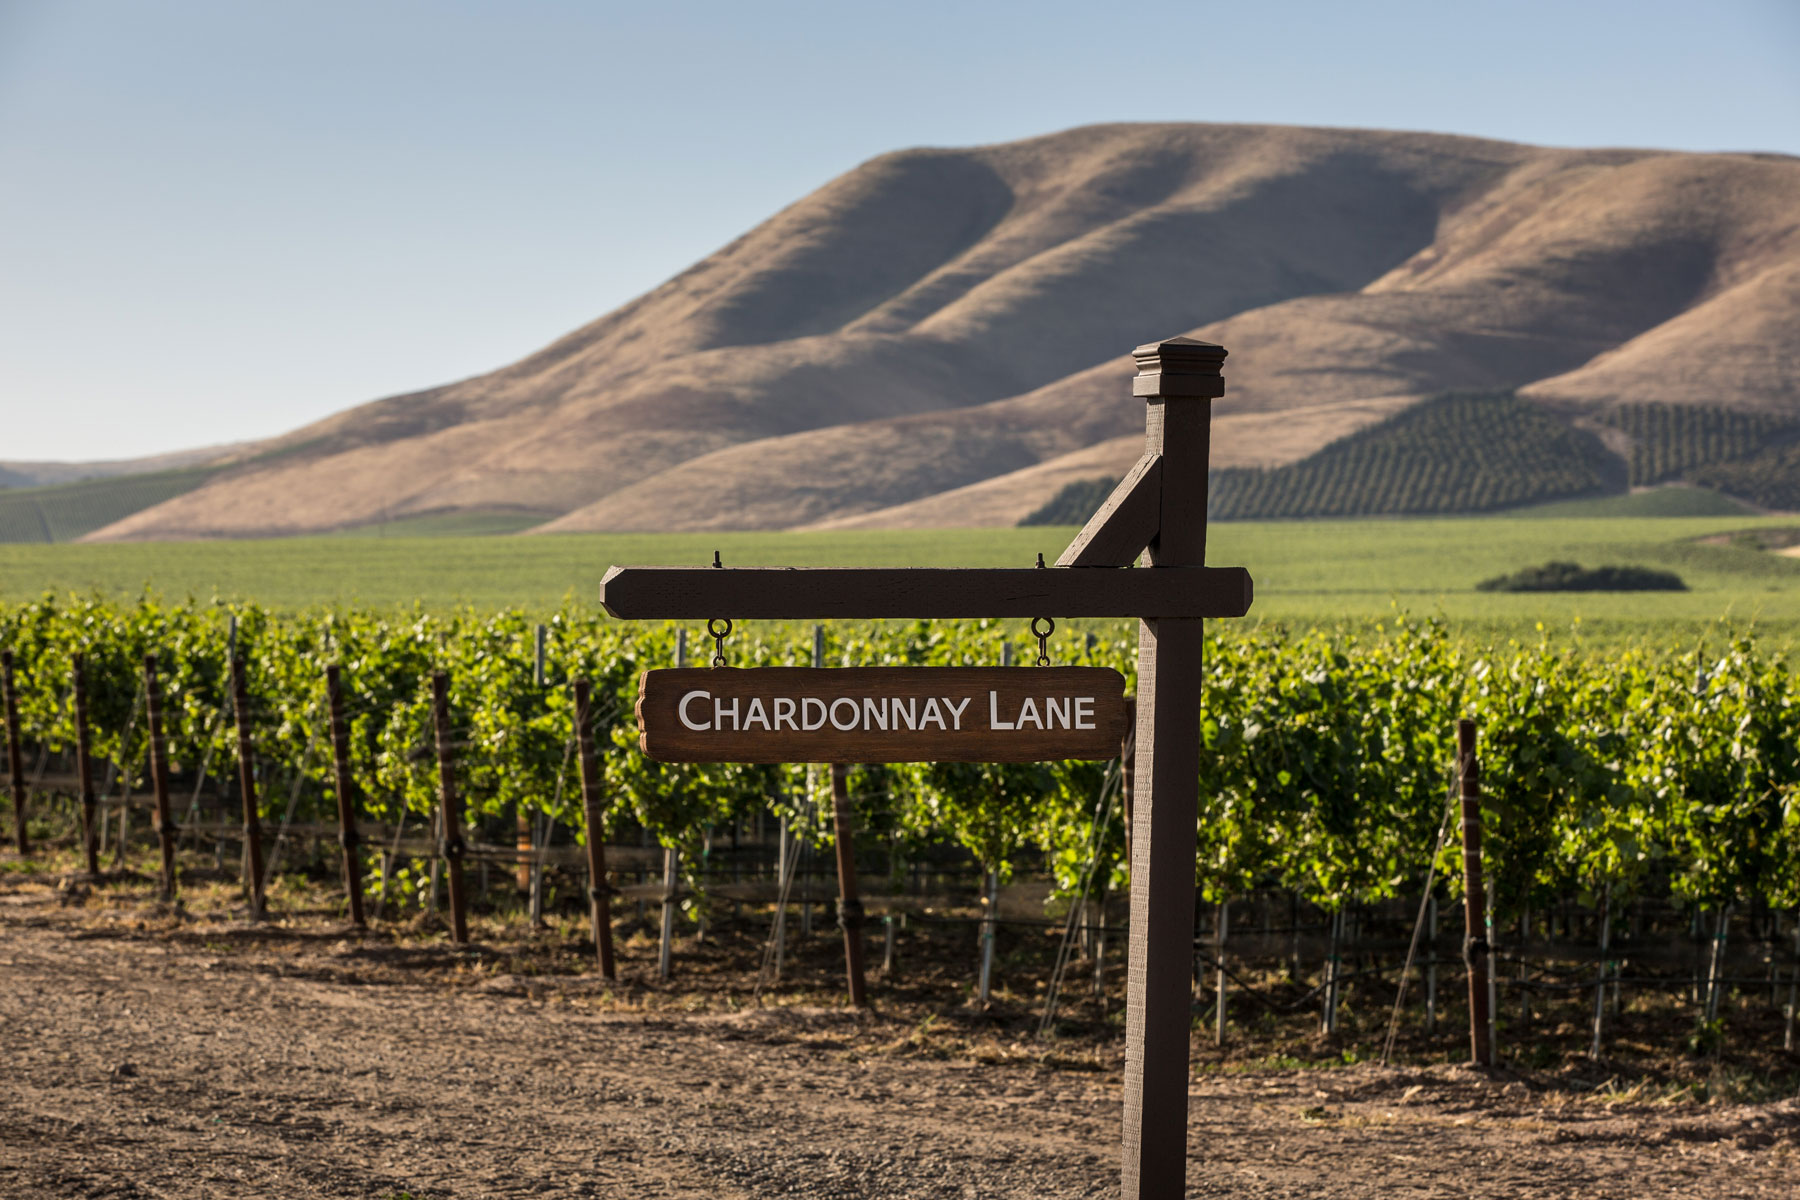 Chardonnay vineyard in Santa Barbara